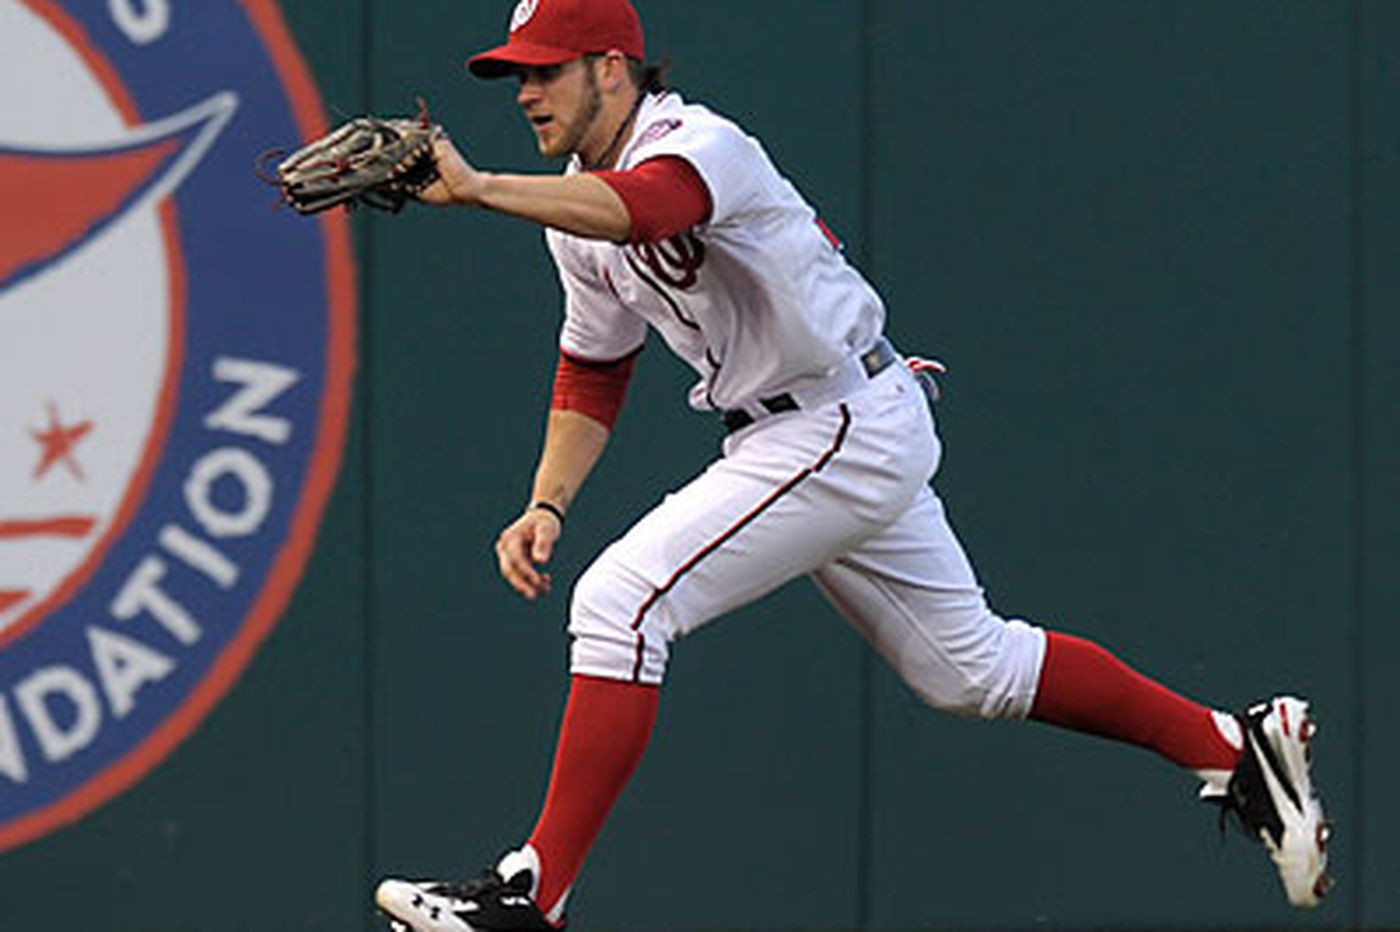 NATIONALS LOSE FIFTH STRAIGHT